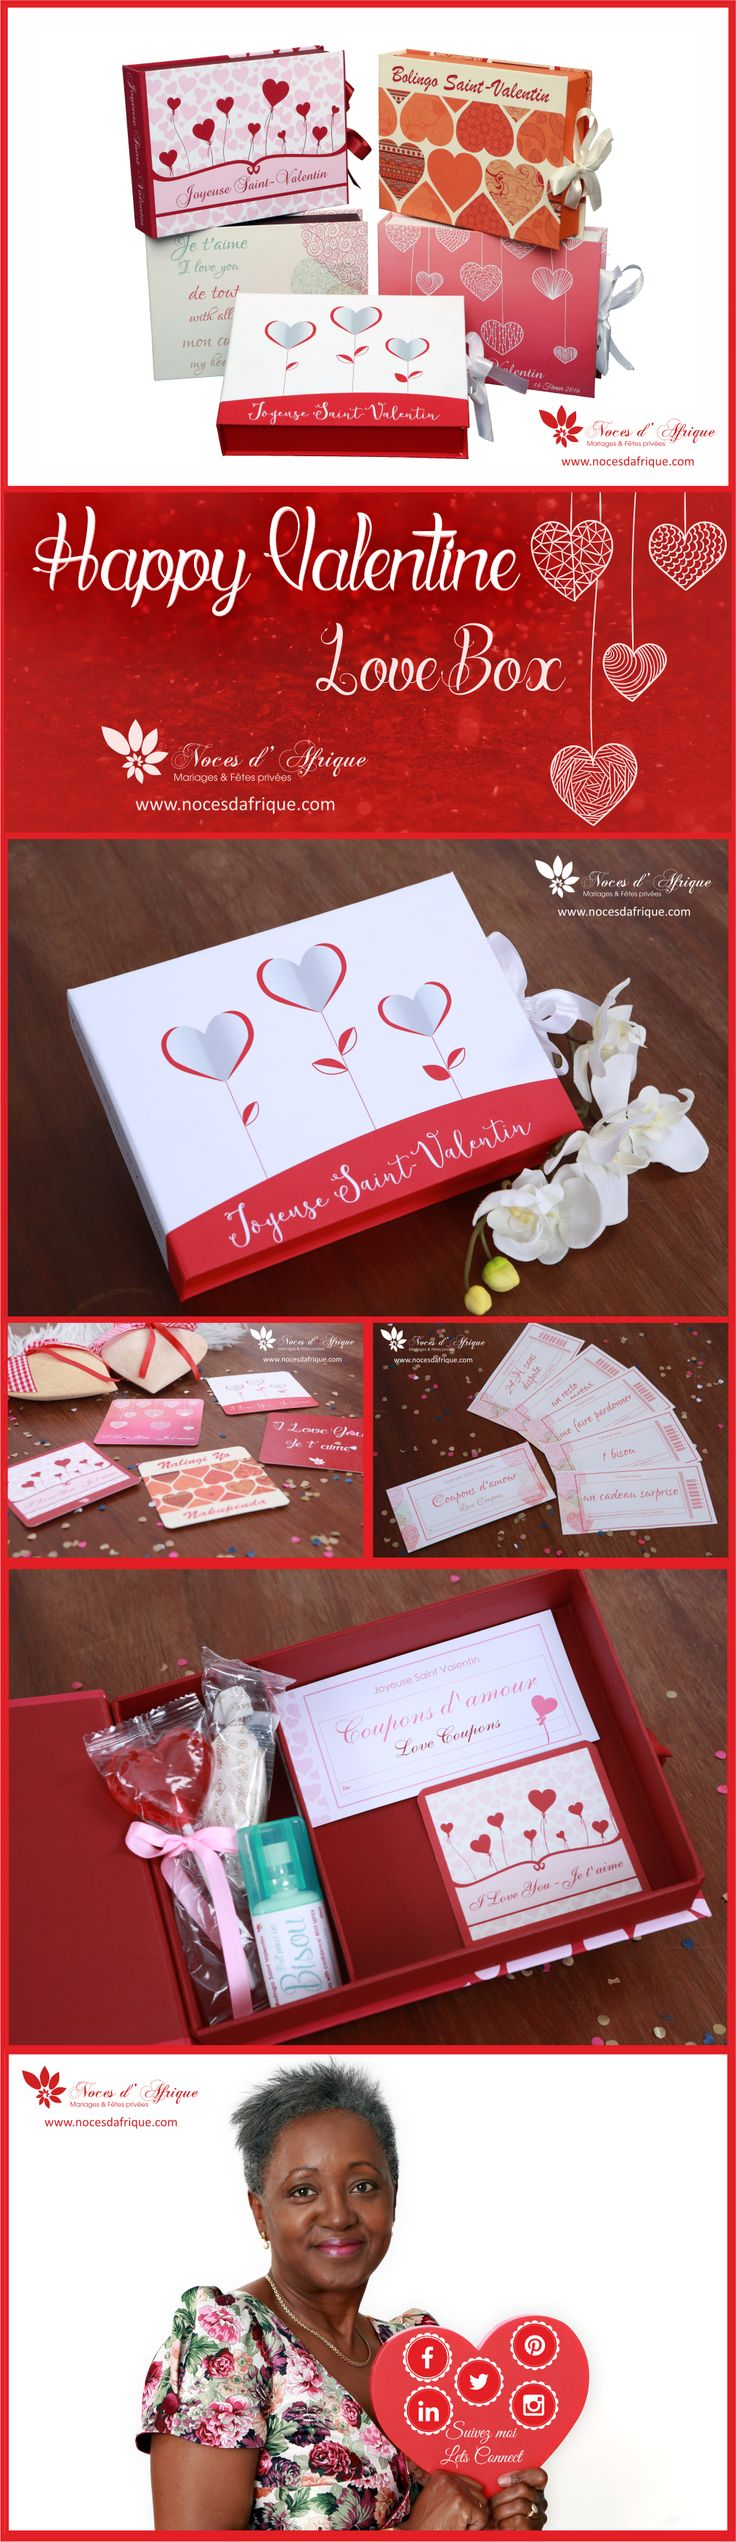 Valentine gifts: A Love Box Noces d'Afrique. http://nocesdafrique.com/products